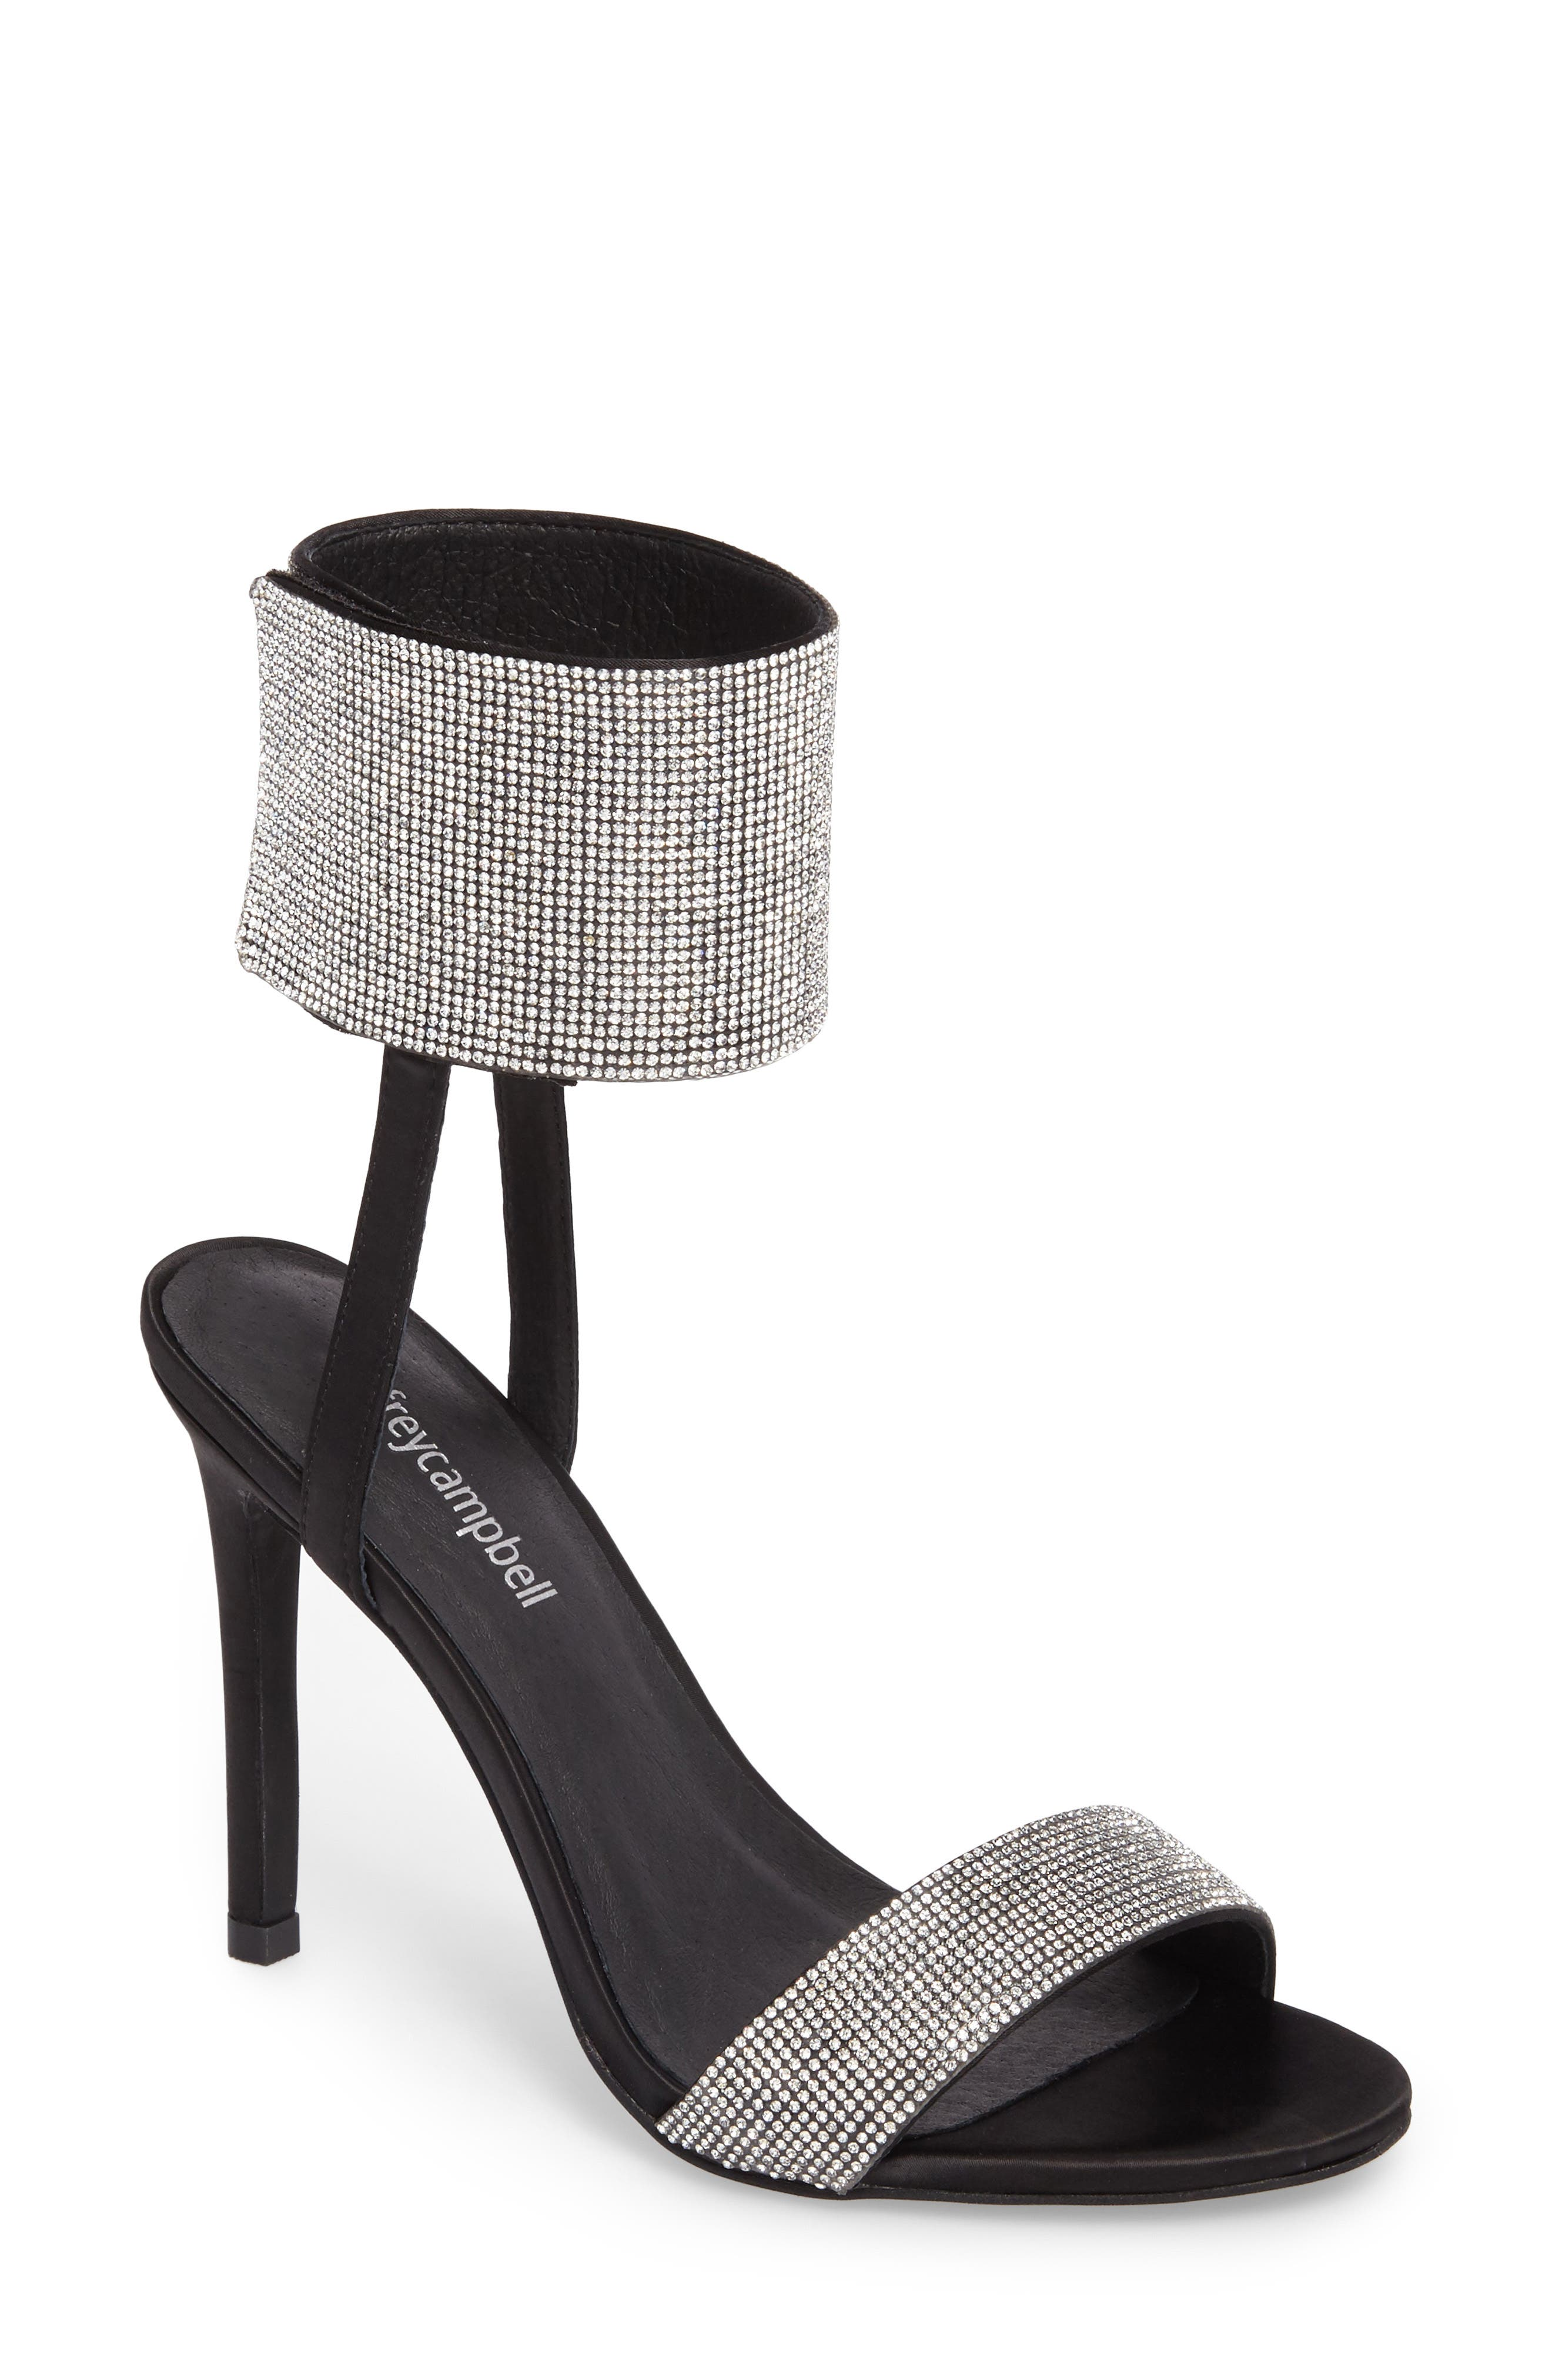 Frost Ankle Cuff Sandal,                         Main,                         color, Black Silver